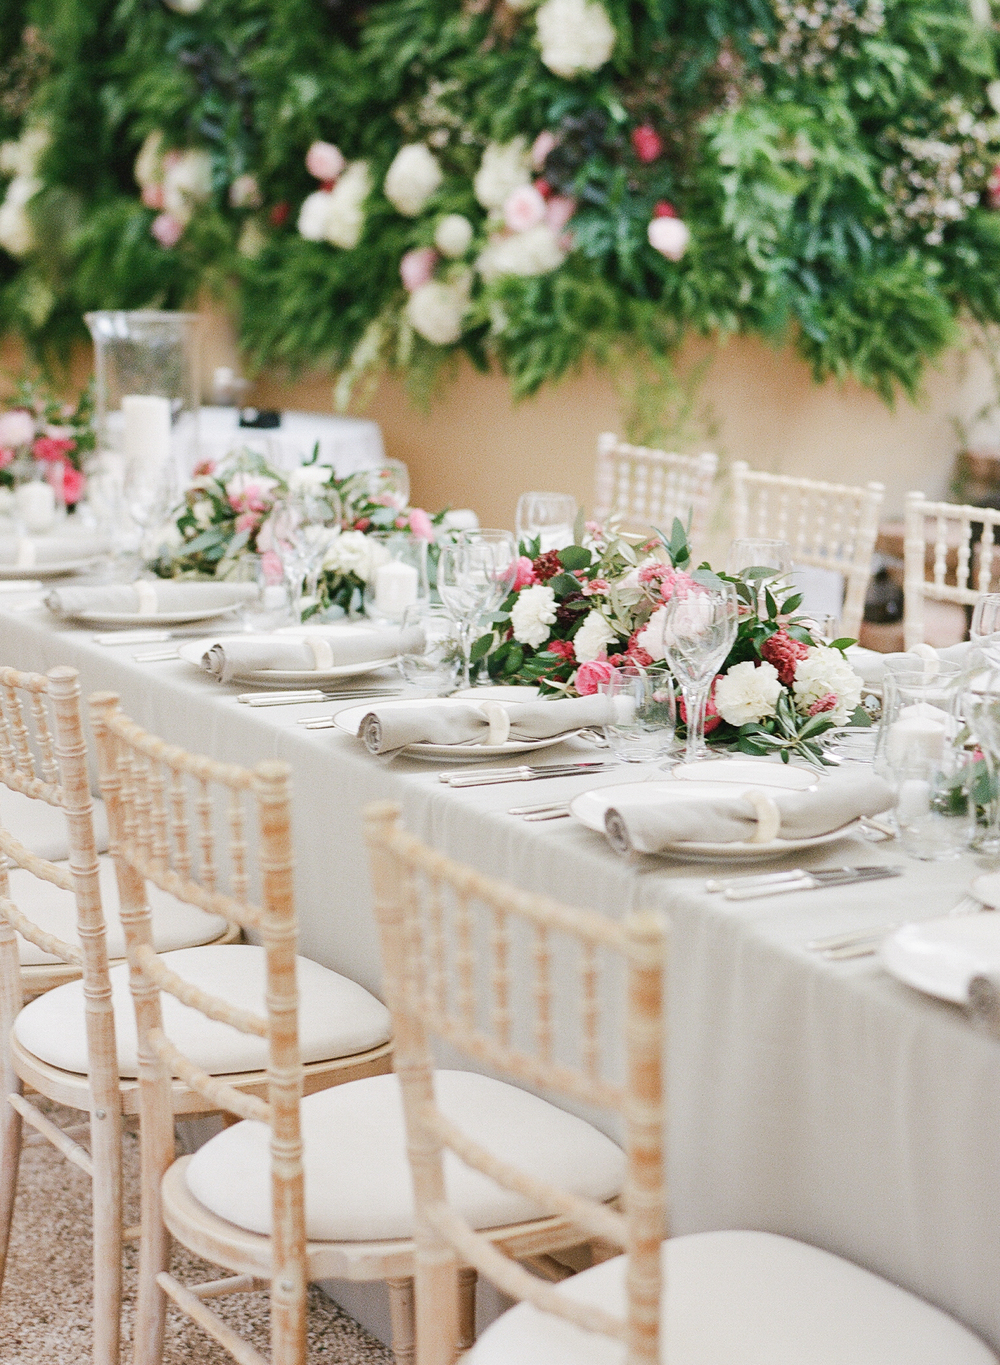 Neutral table settings, bright pink and white floral centerpieces; Sylvie Gil Photography